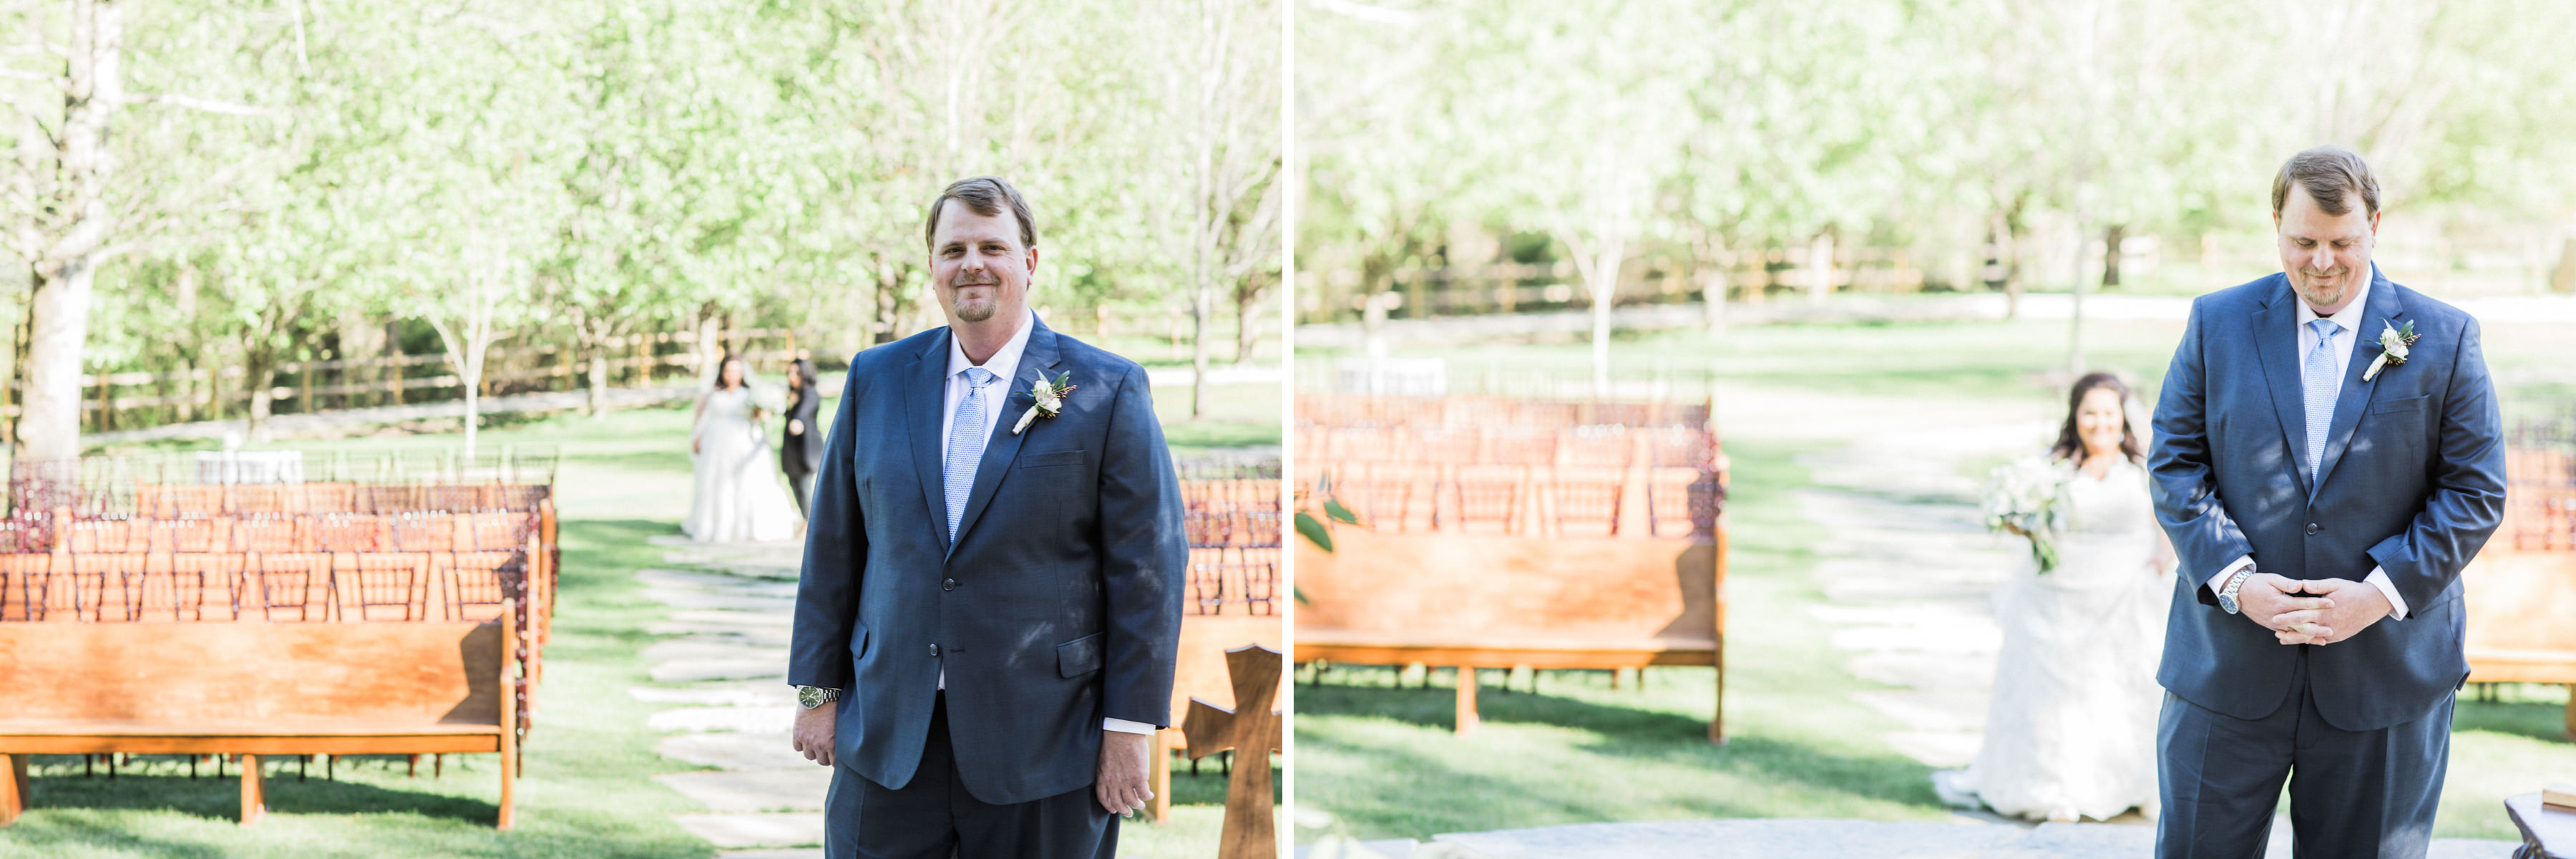 CAHOON_WEDDING_BIRMINGHAM_ALABAMA_WEDDING_PHOTOGRAPHY_44